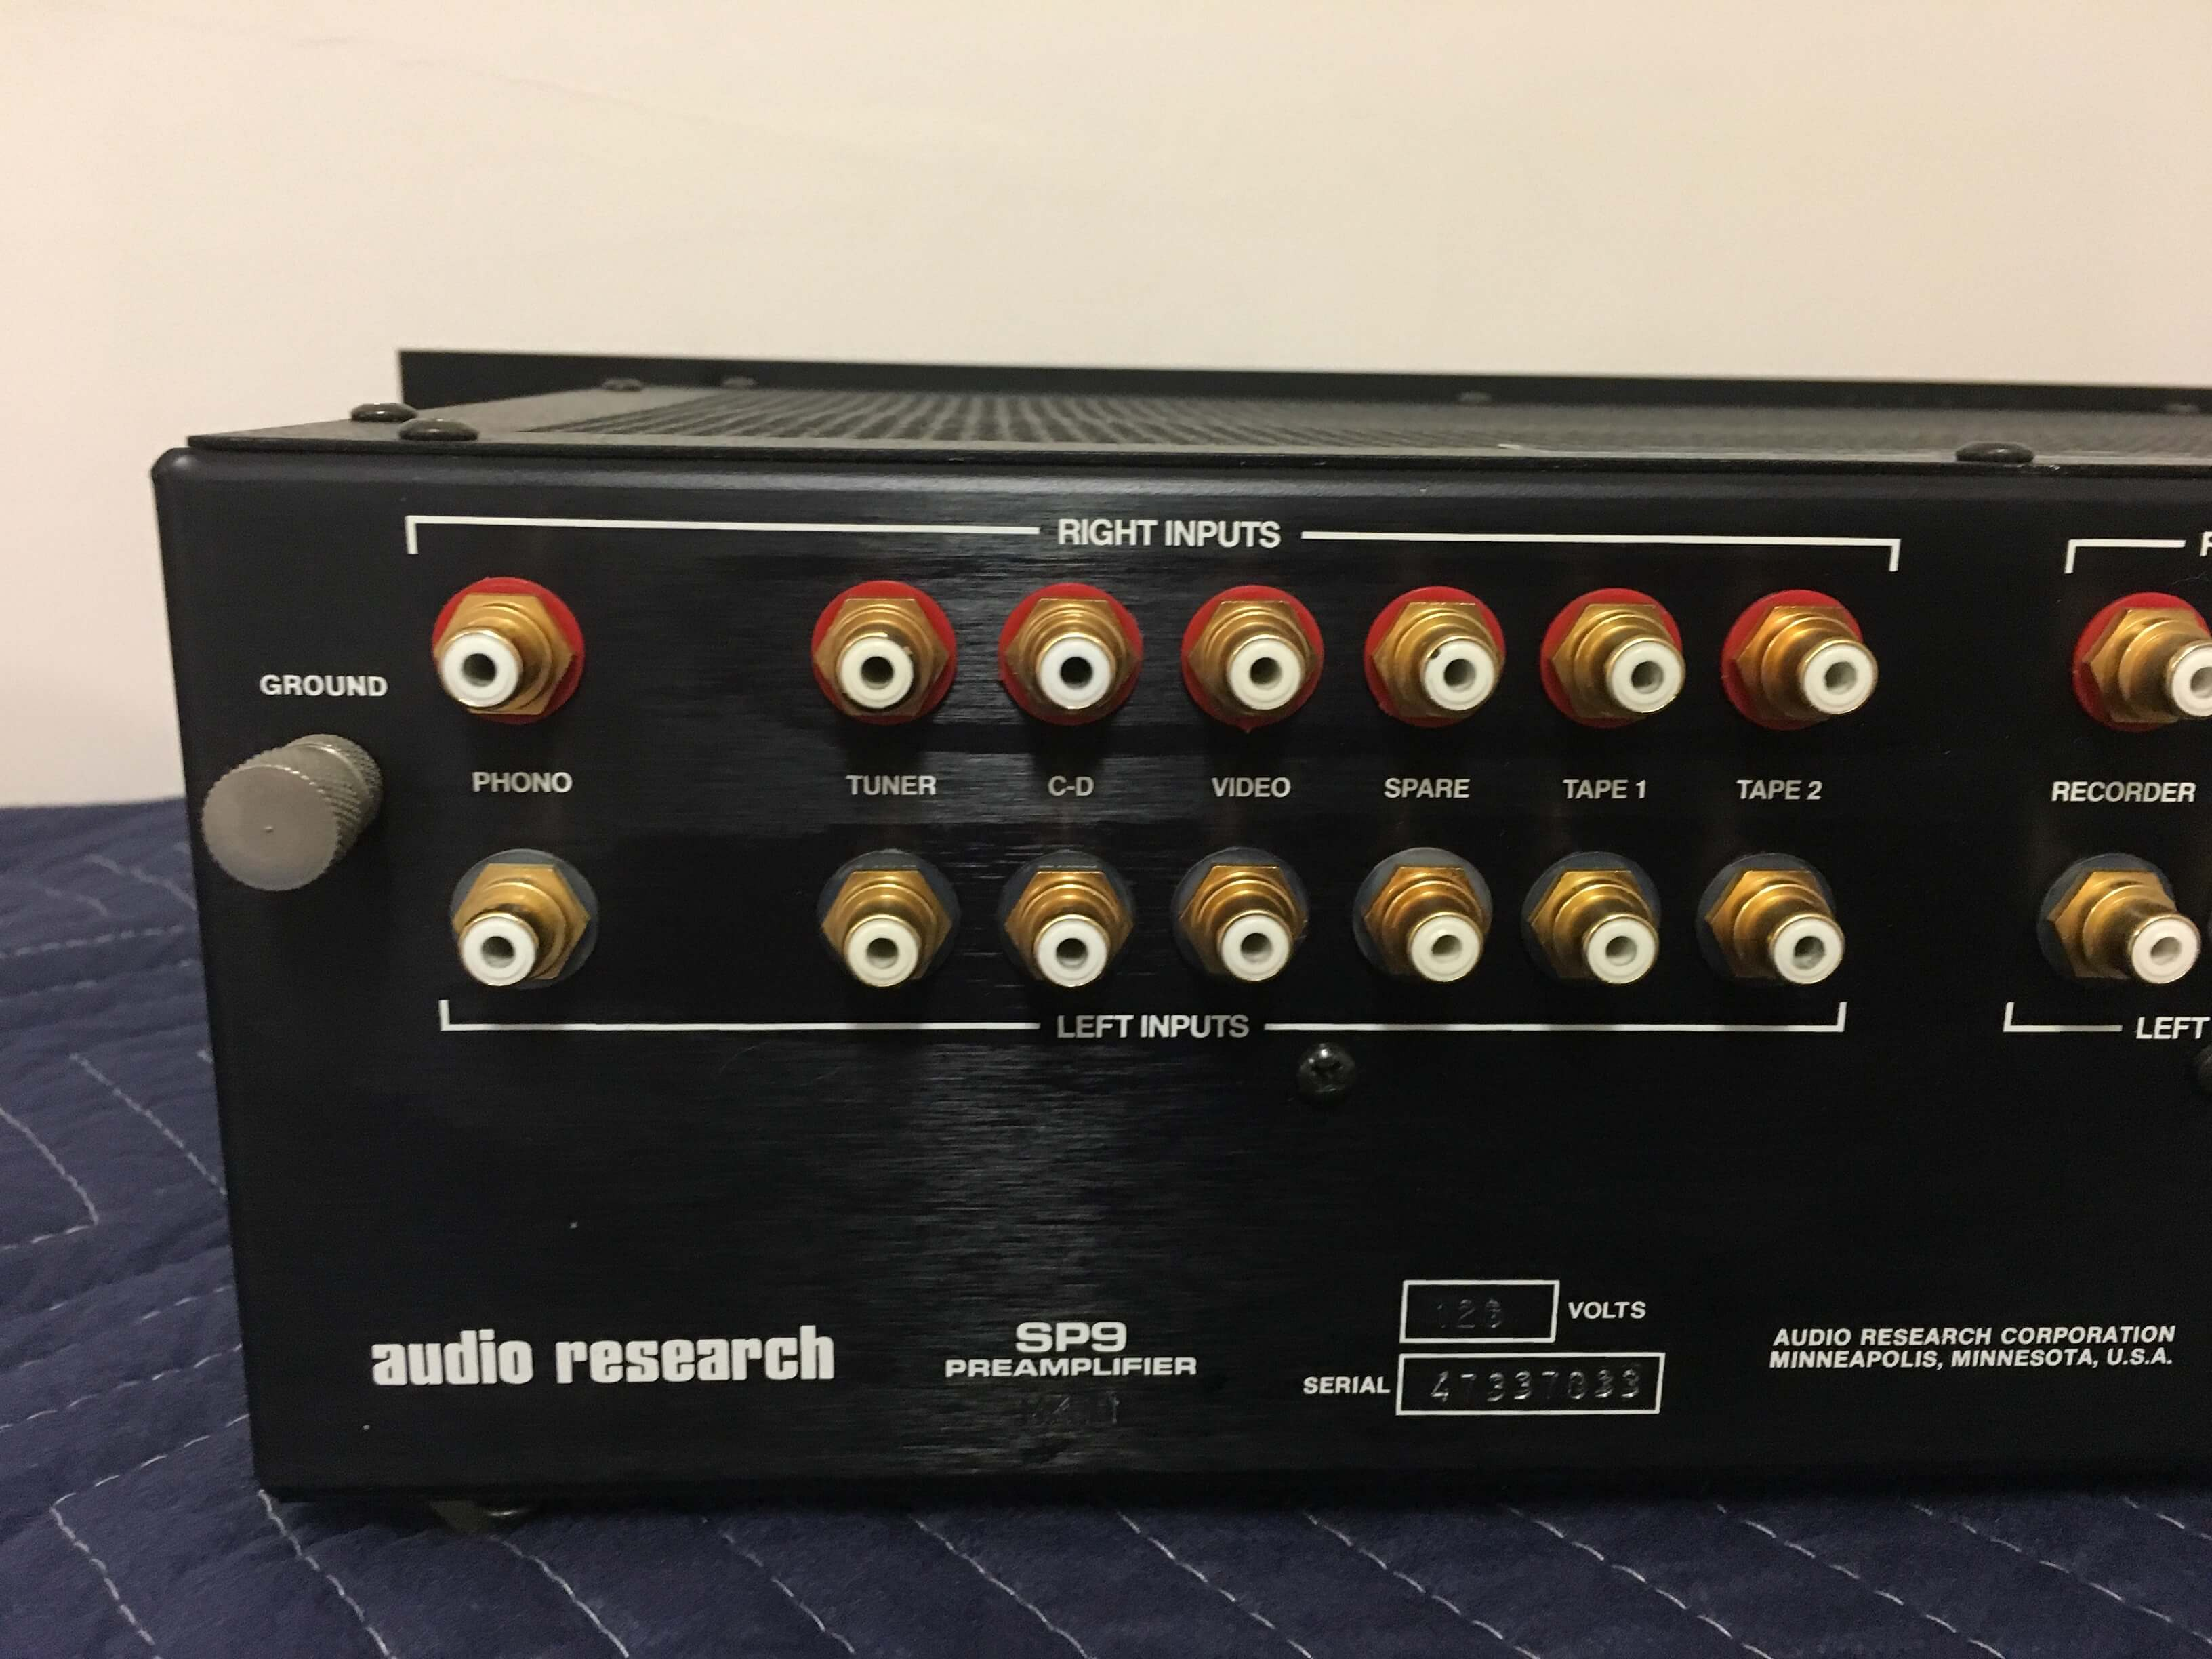 Audio Research SP9 high definition stereo preamplifier